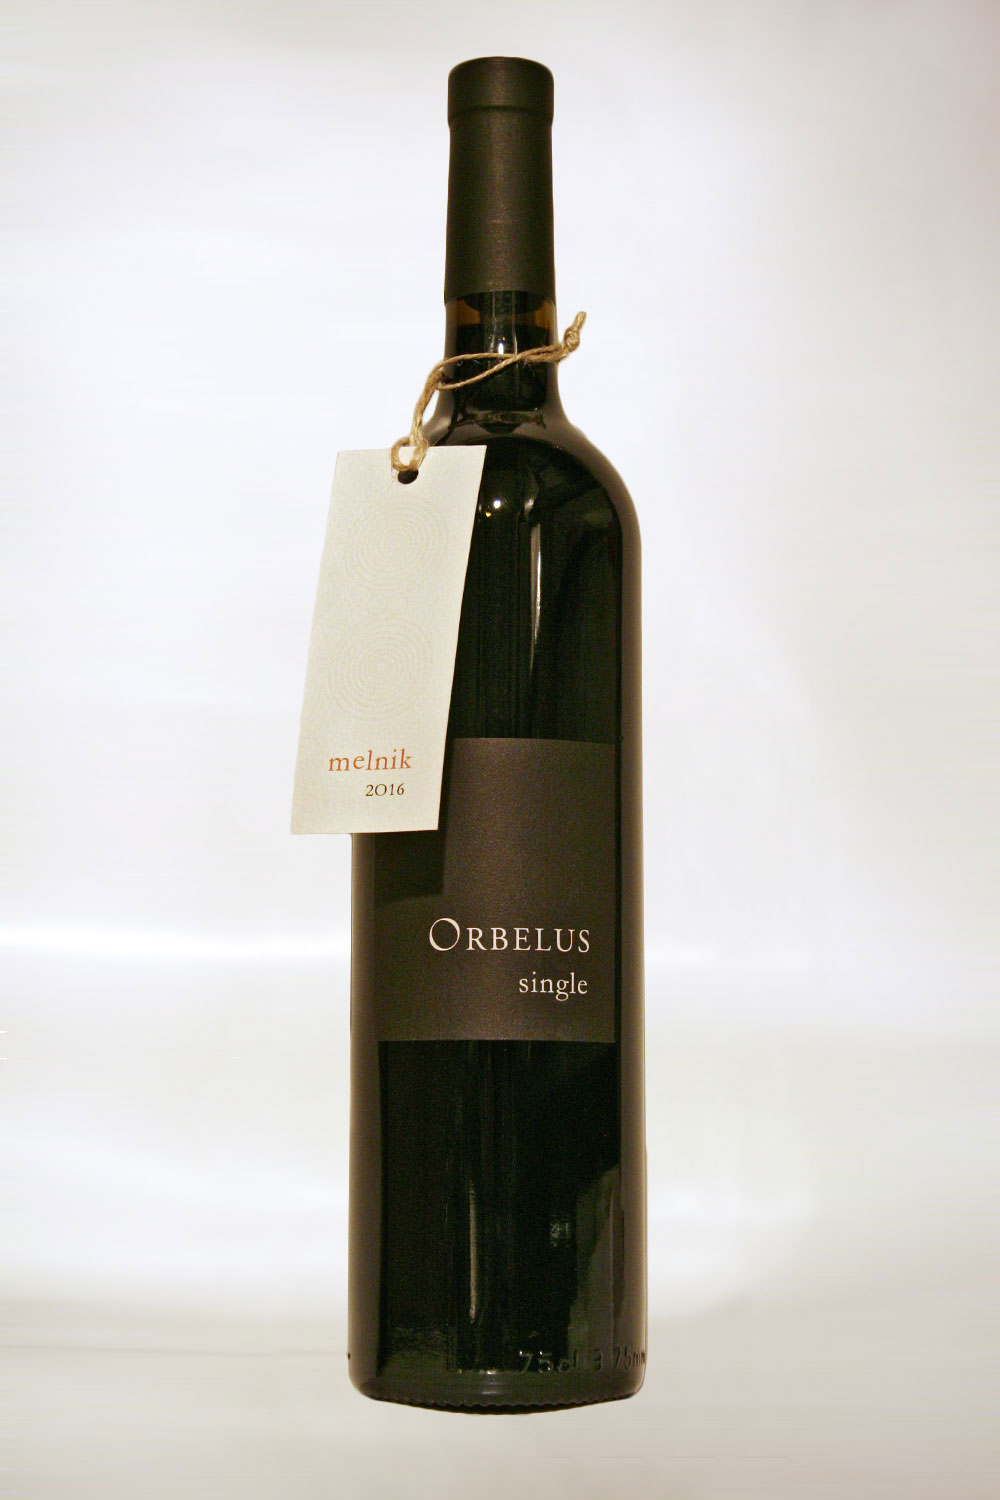 Orbelus Single Melnik 55 2016